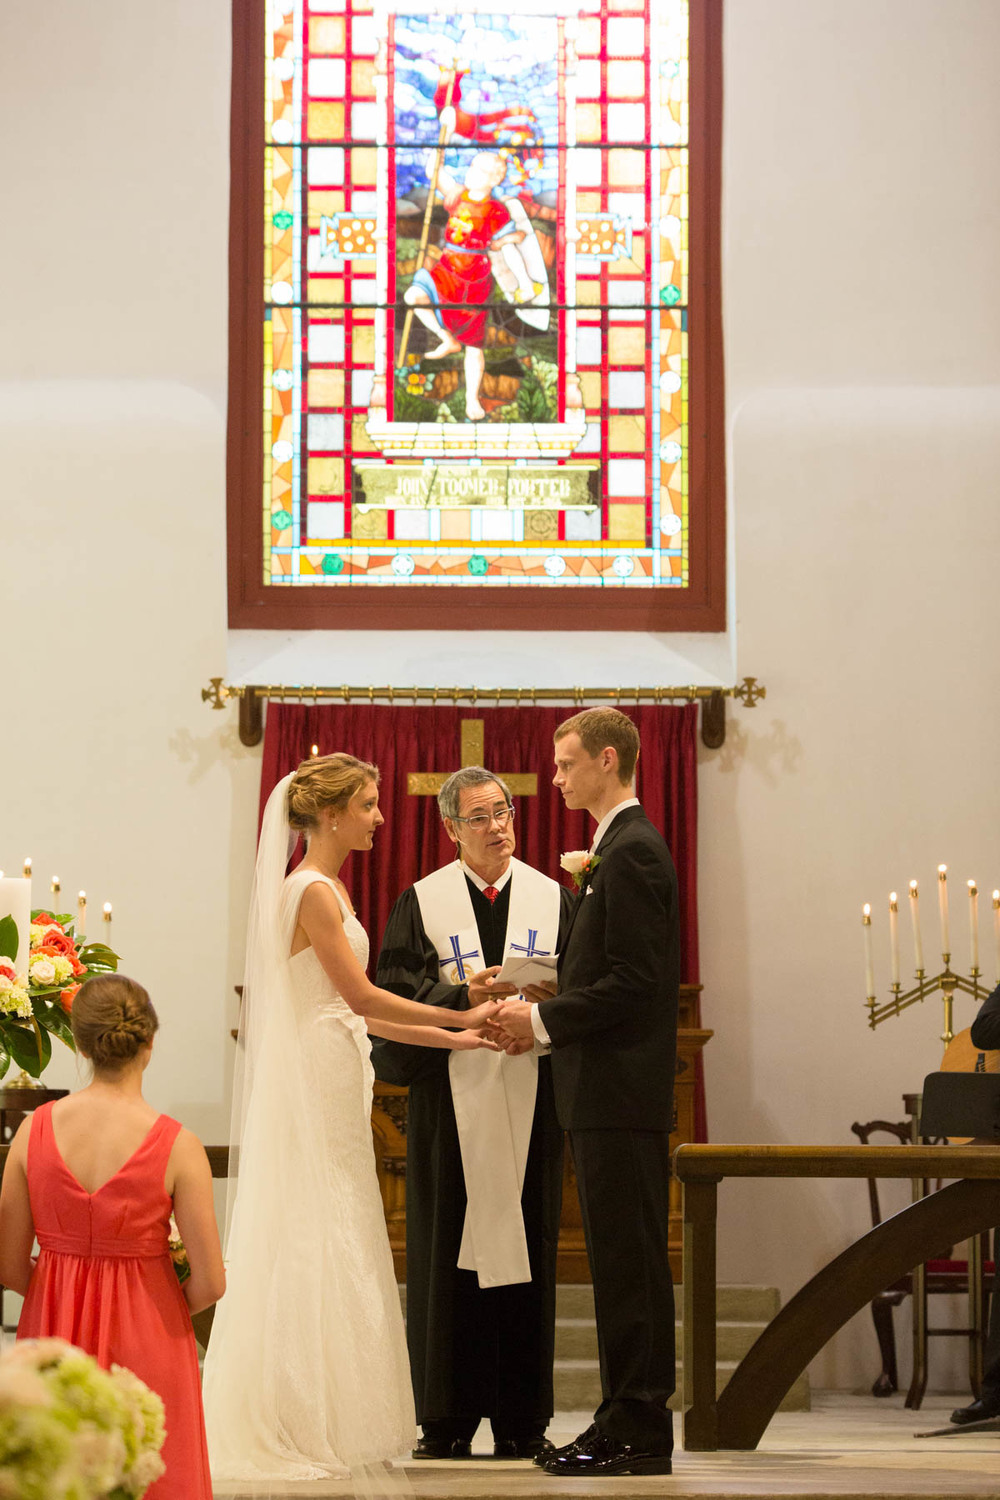 Aliece and david wedding-30.jpg